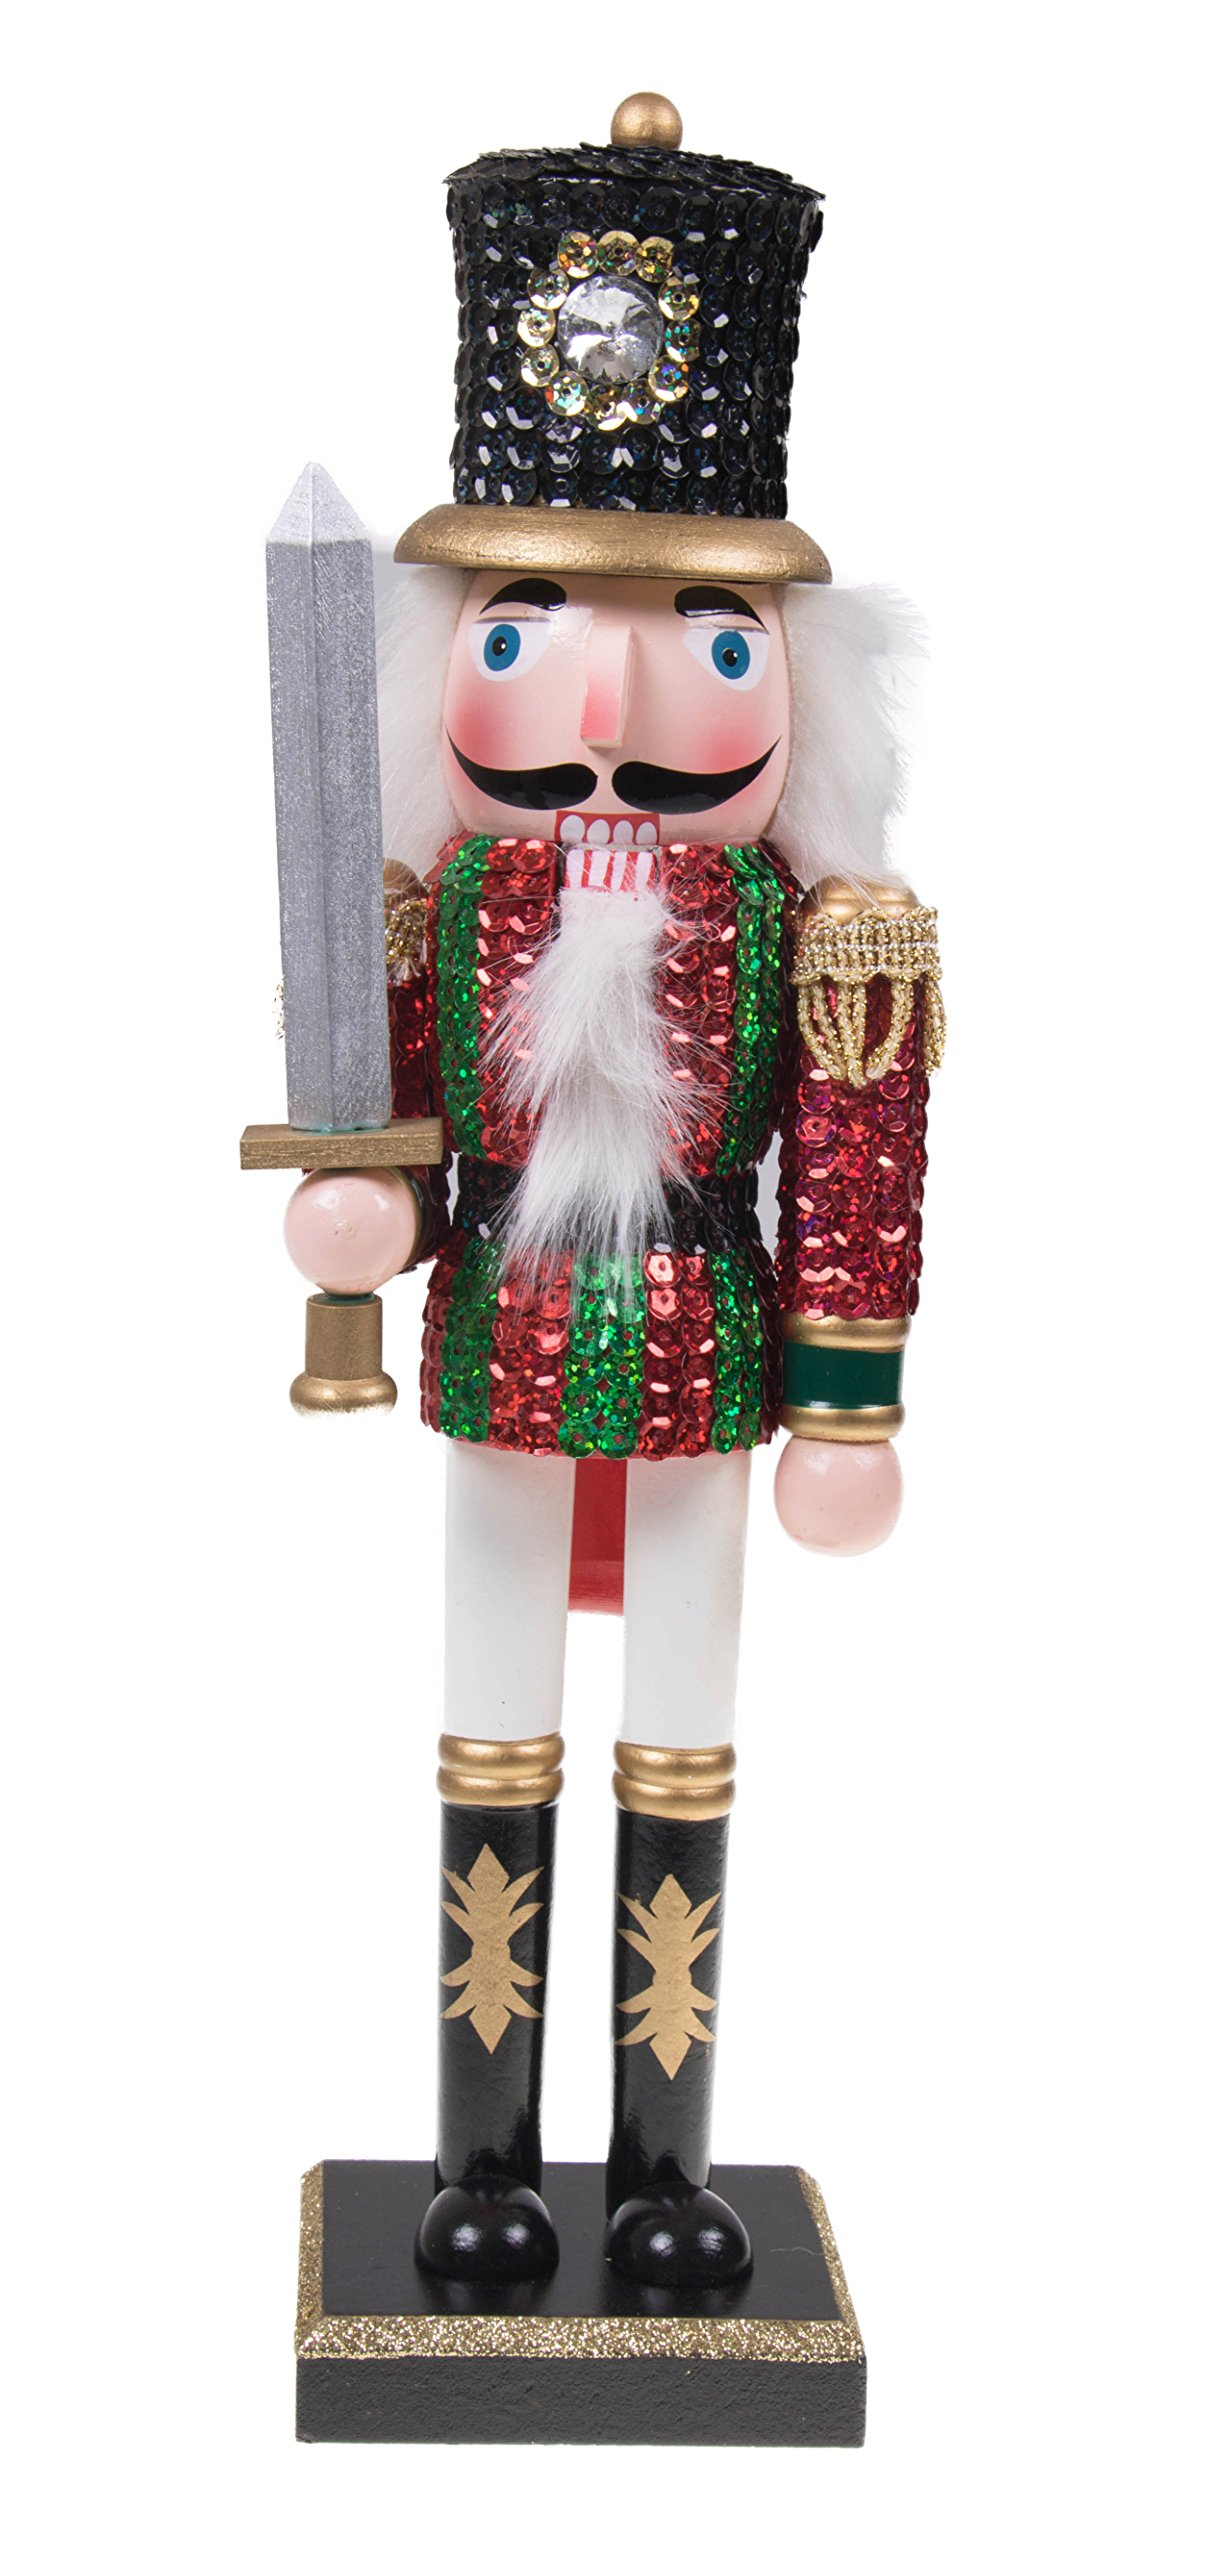 Clever Creations Traditional Wooden Sequin Soldier Nutcracker With Sword Red And Green Uniform Festive Christmas Decor 14 Tall Perfect For Shelves And Tables 100 Wood Buy Online In Aruba